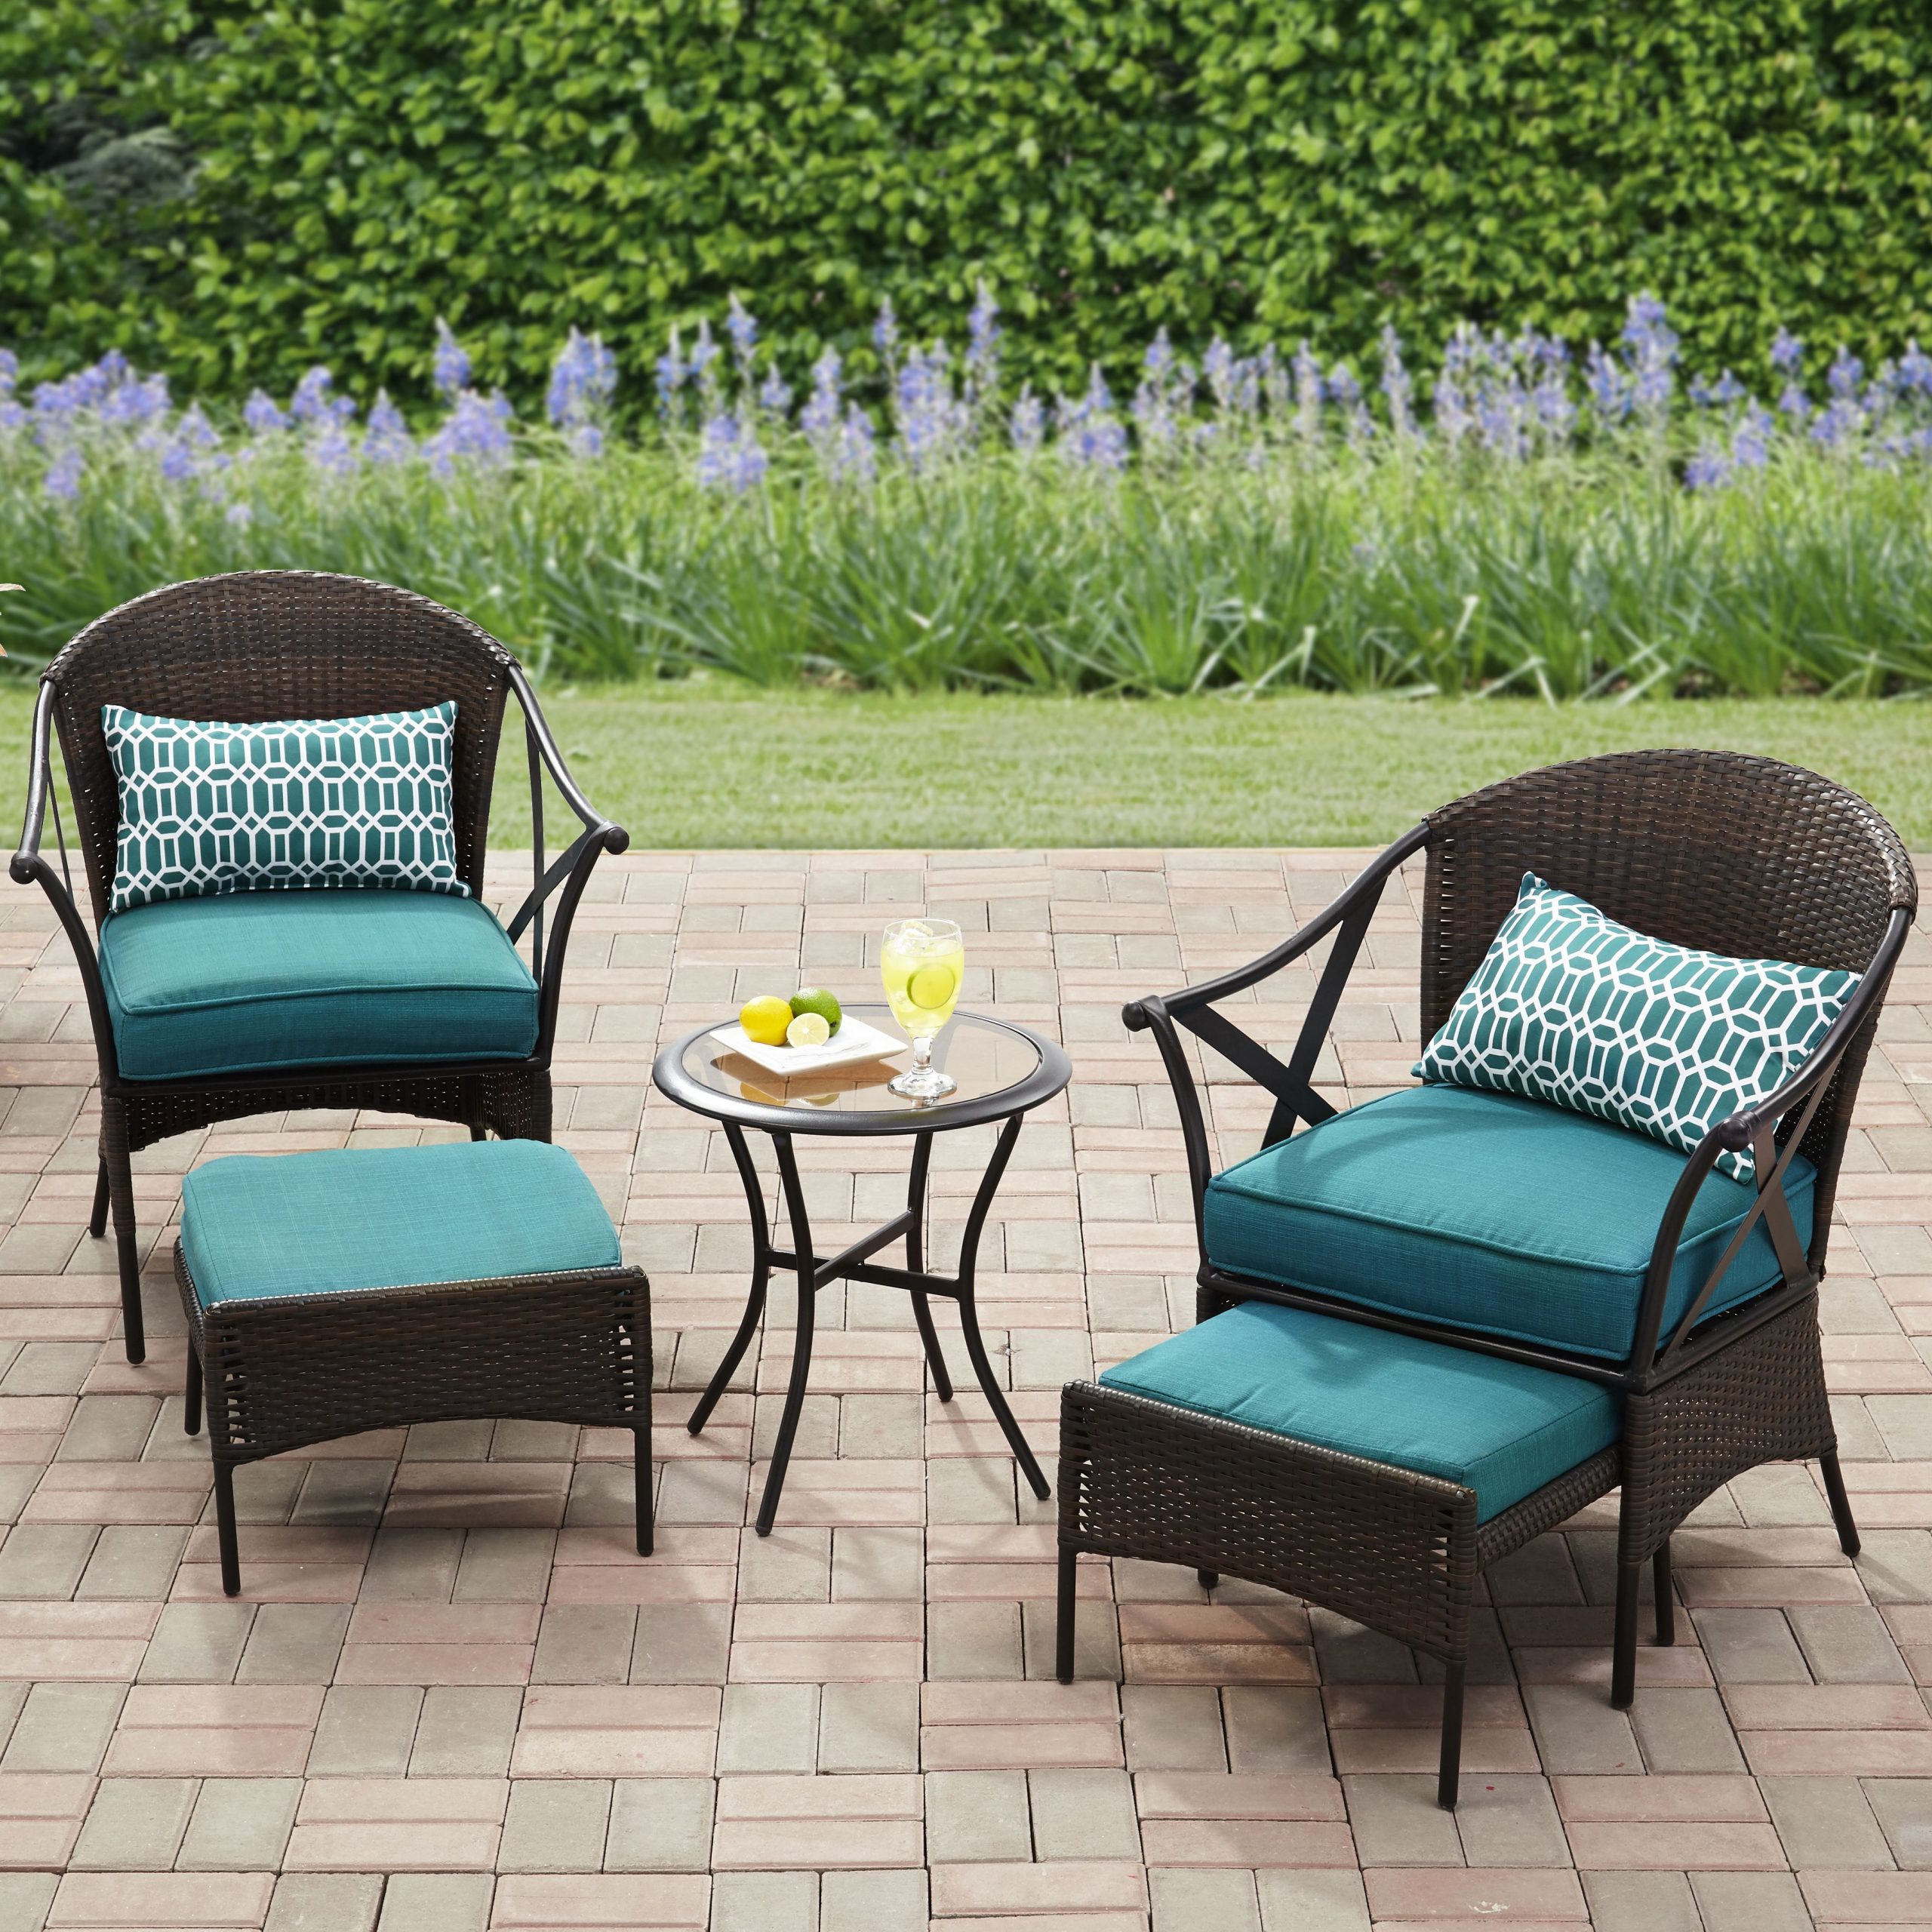 The 11 Best Outdoor Furniture Pieces From Walmart In 2020 With Regard To Preferred Outdoor Wicker Plastic Tear Porch Swings With Stand (View 27 of 30)